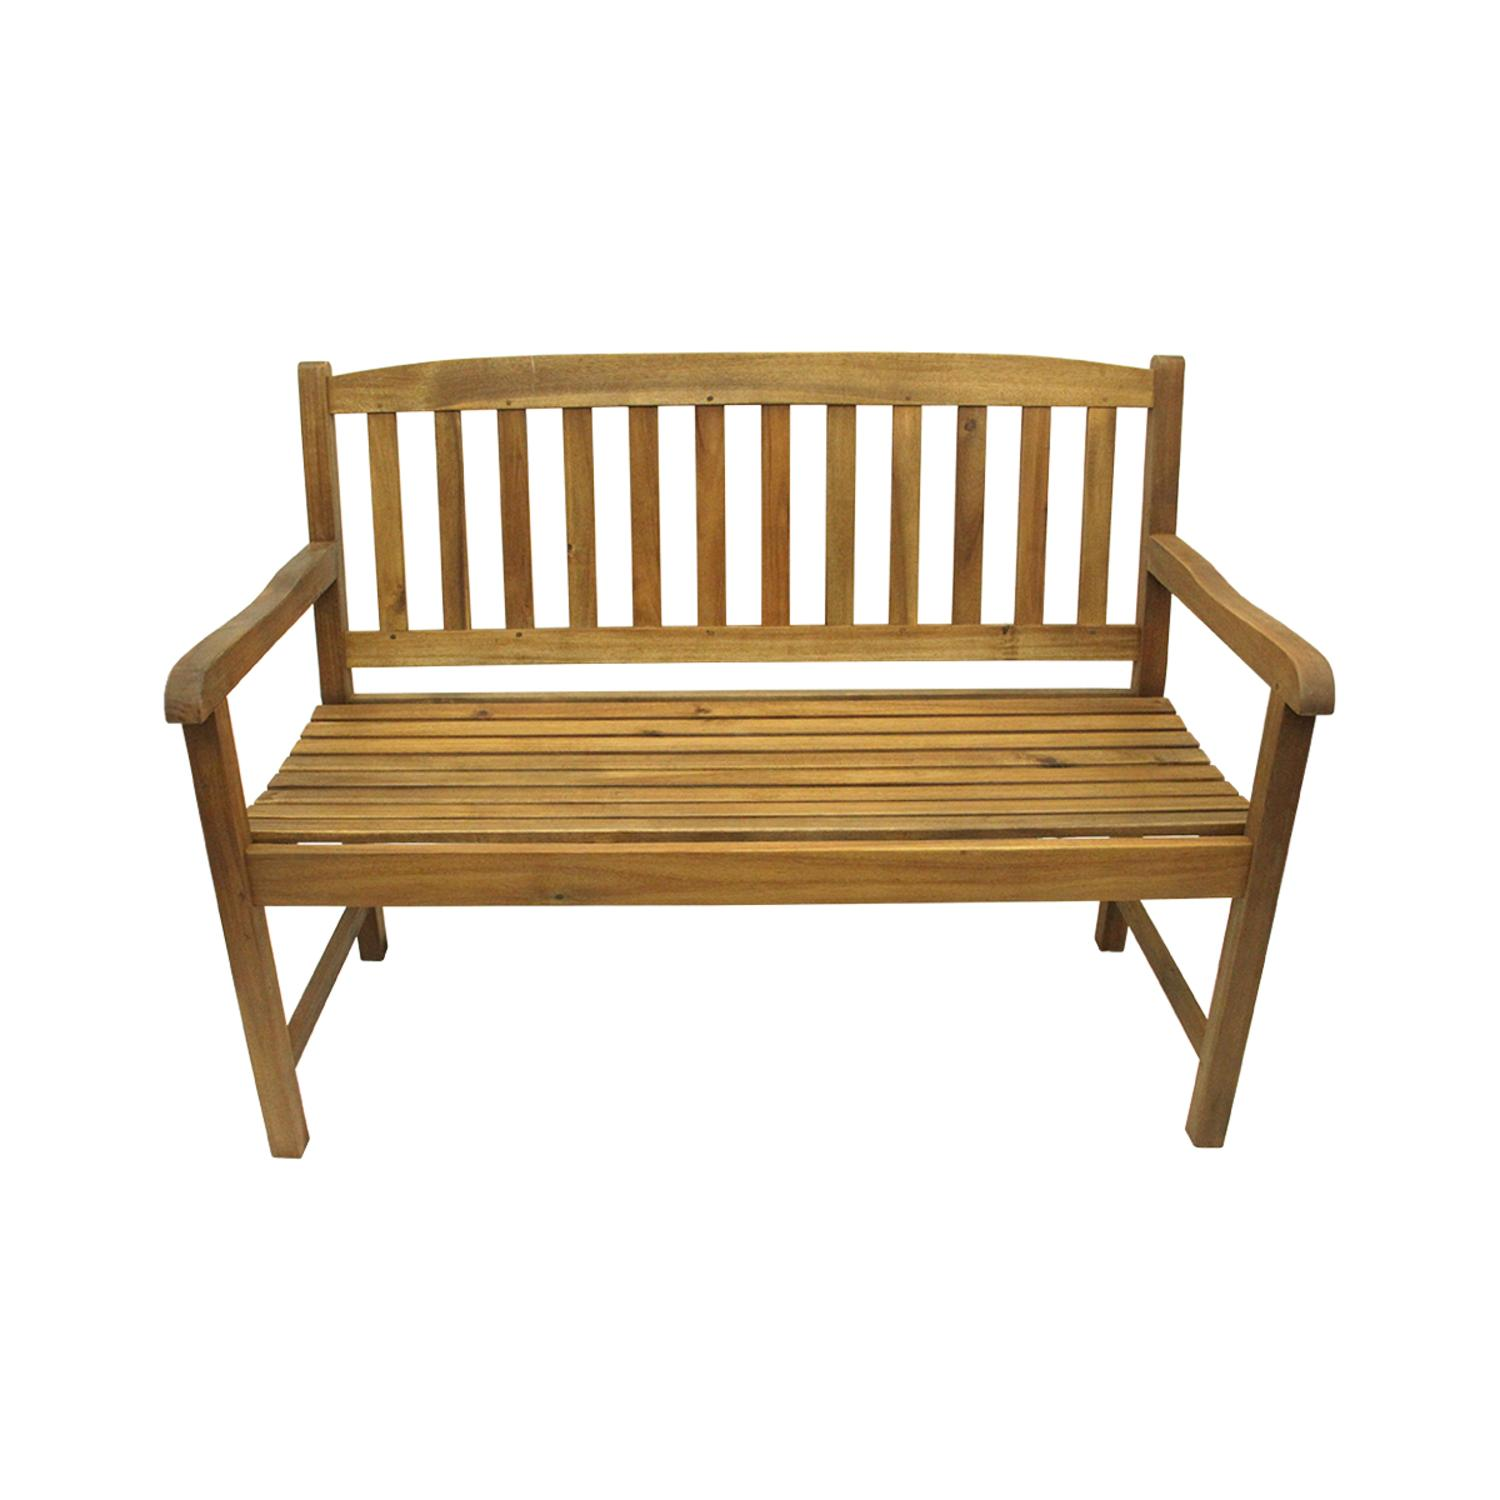 "47"" Acacia Wood Outdoor Patio Furniture Bench"